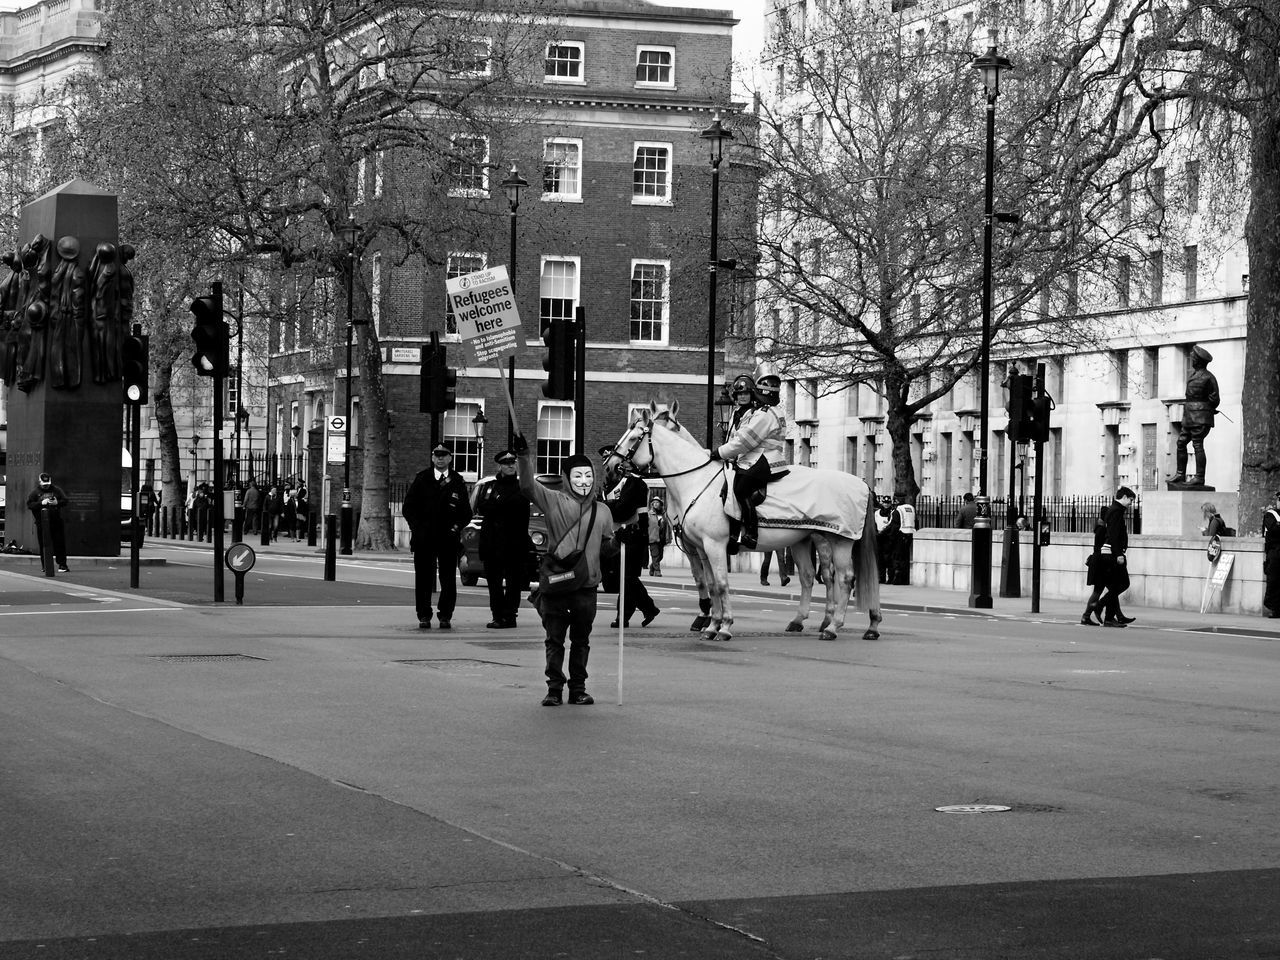 building exterior, architecture, built structure, city, real people, tree, large group of people, bare tree, outdoors, men, sport, day, people